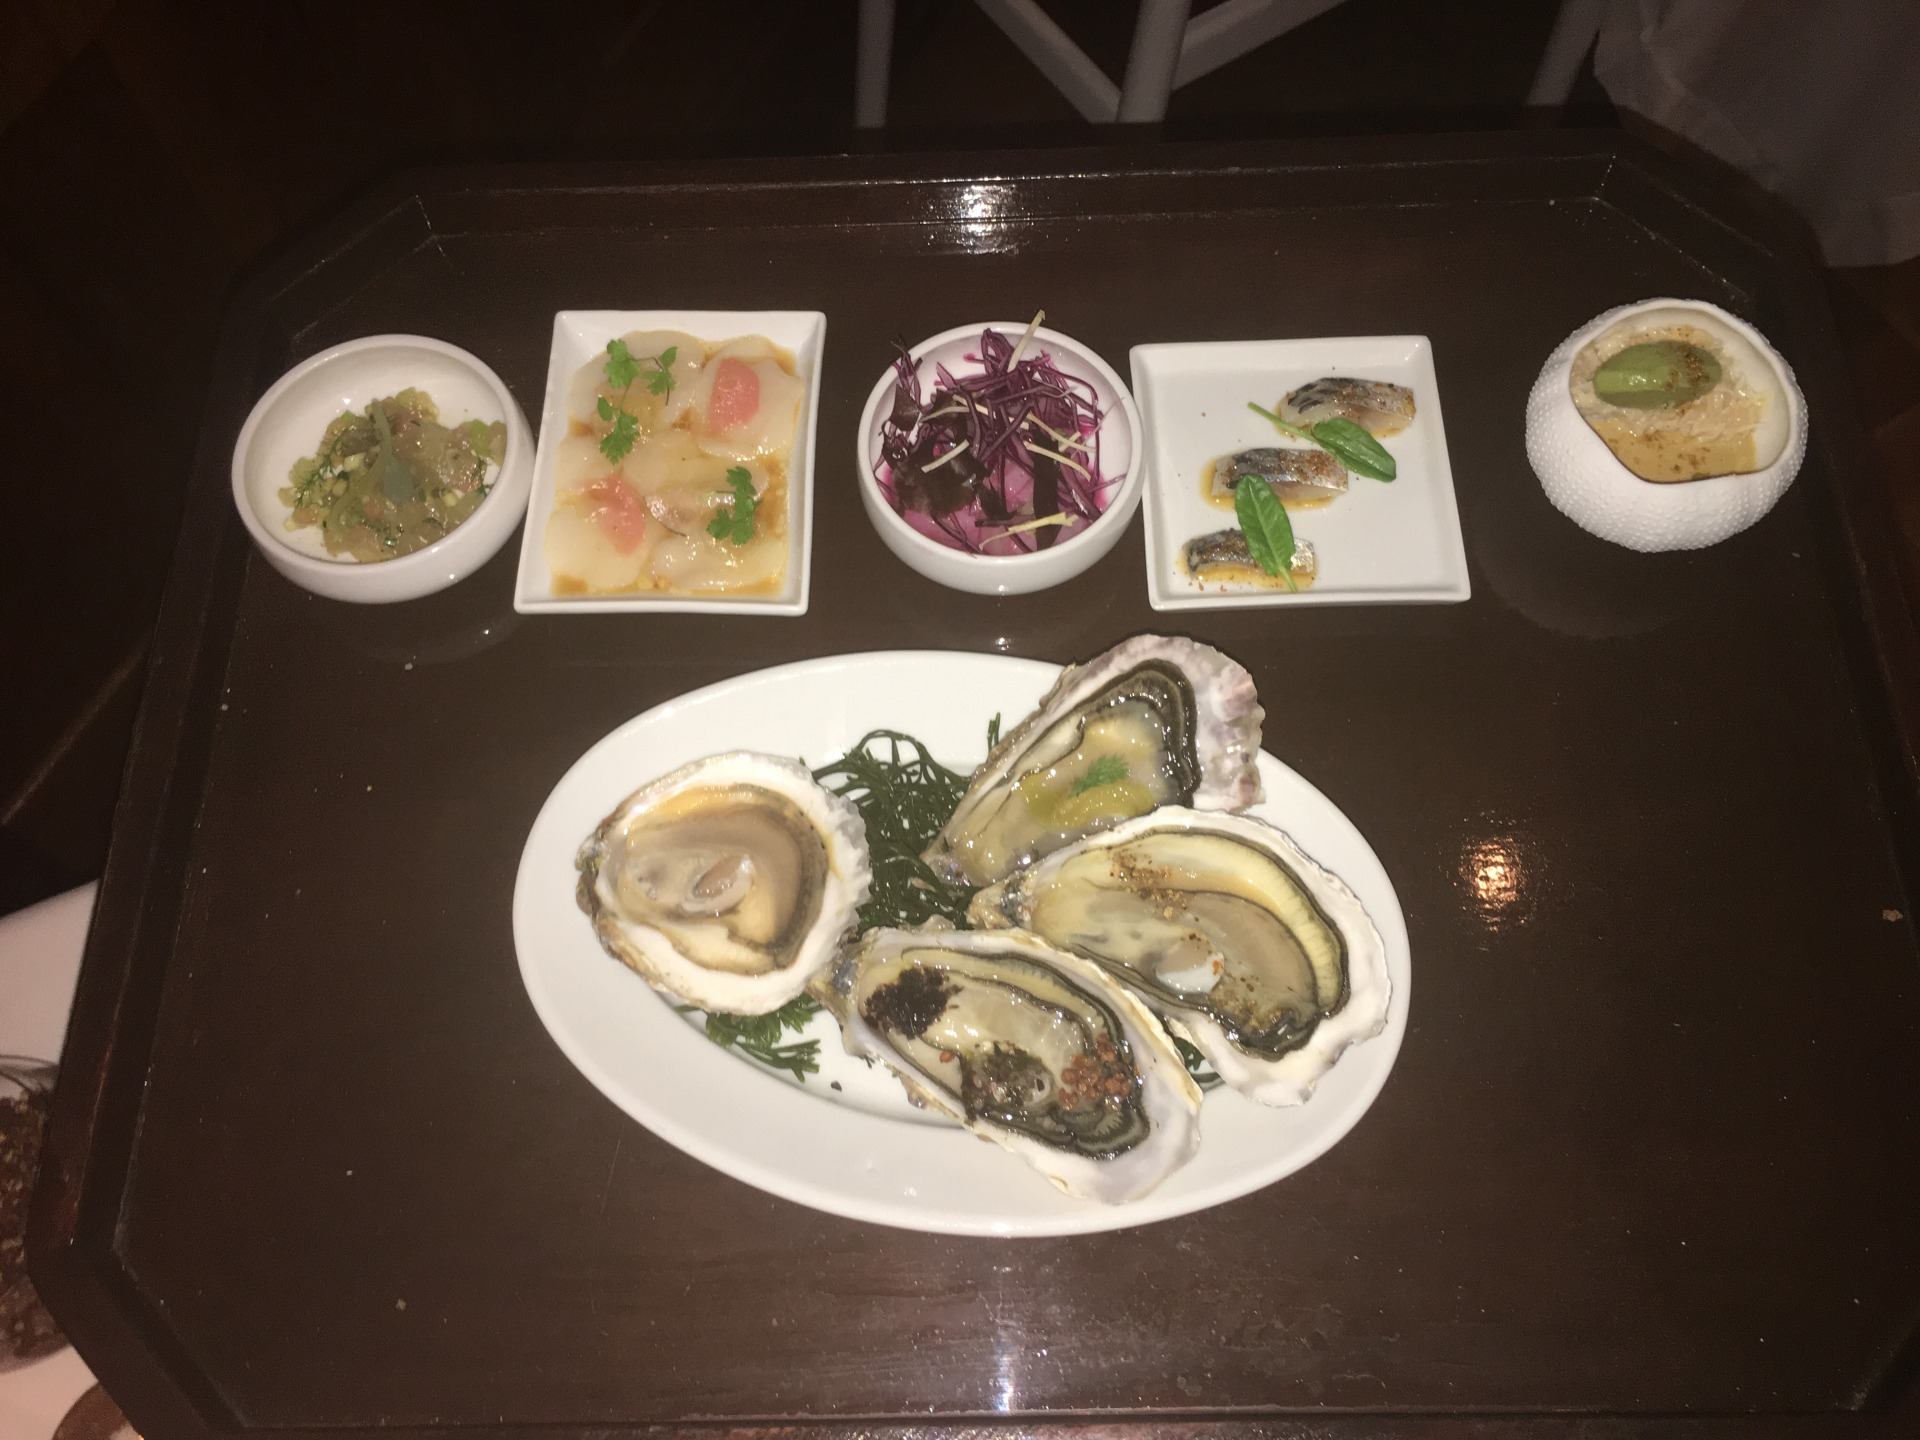 Cold appetizers, Grignoté des bords de Mer menu